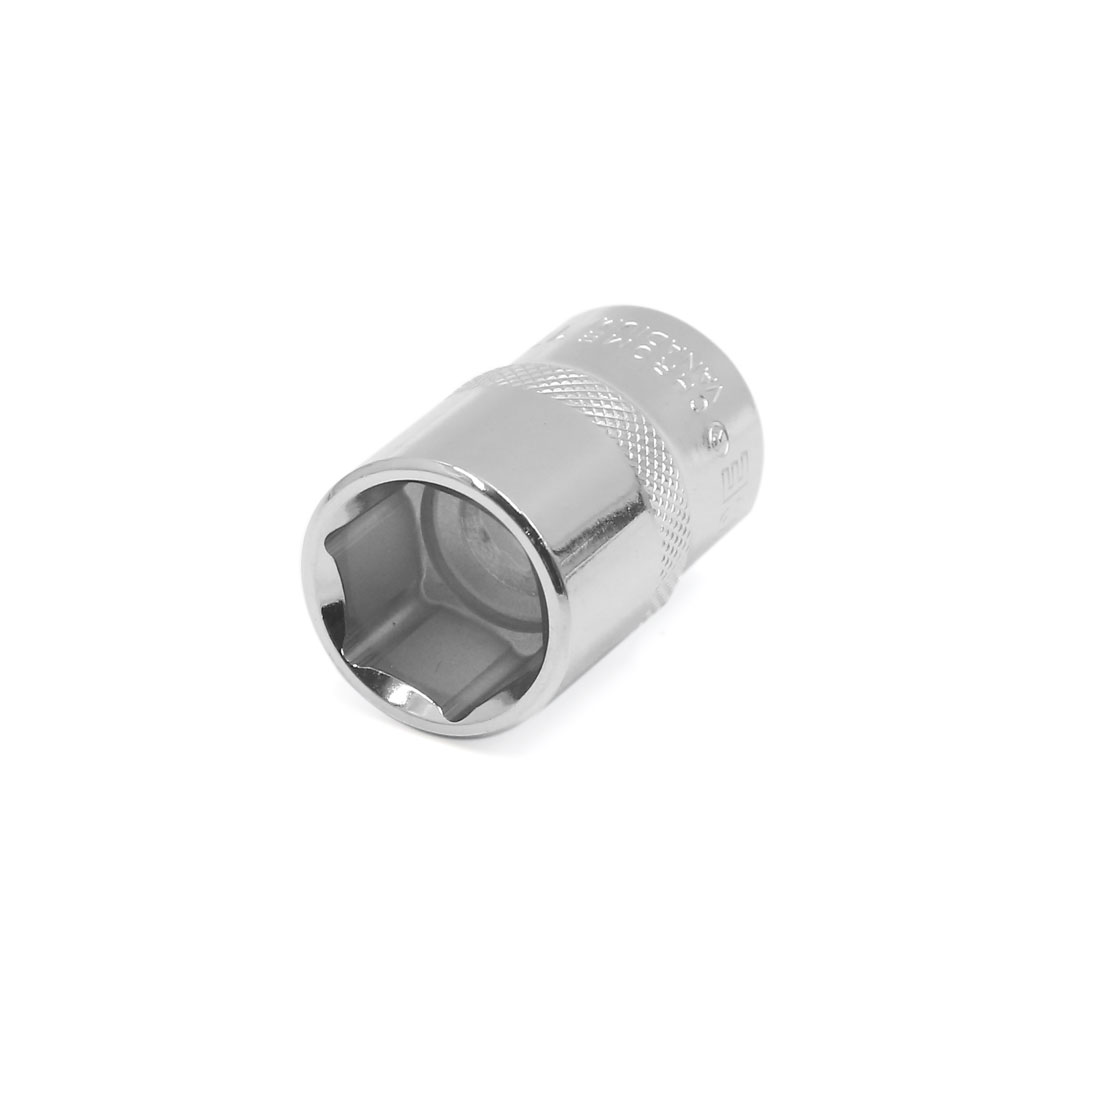 """Auto Car 17mm Hexagon 6 Point Socket Nut Adapter for Wrench 1/2"""" Square Drive - image 1 of 3"""